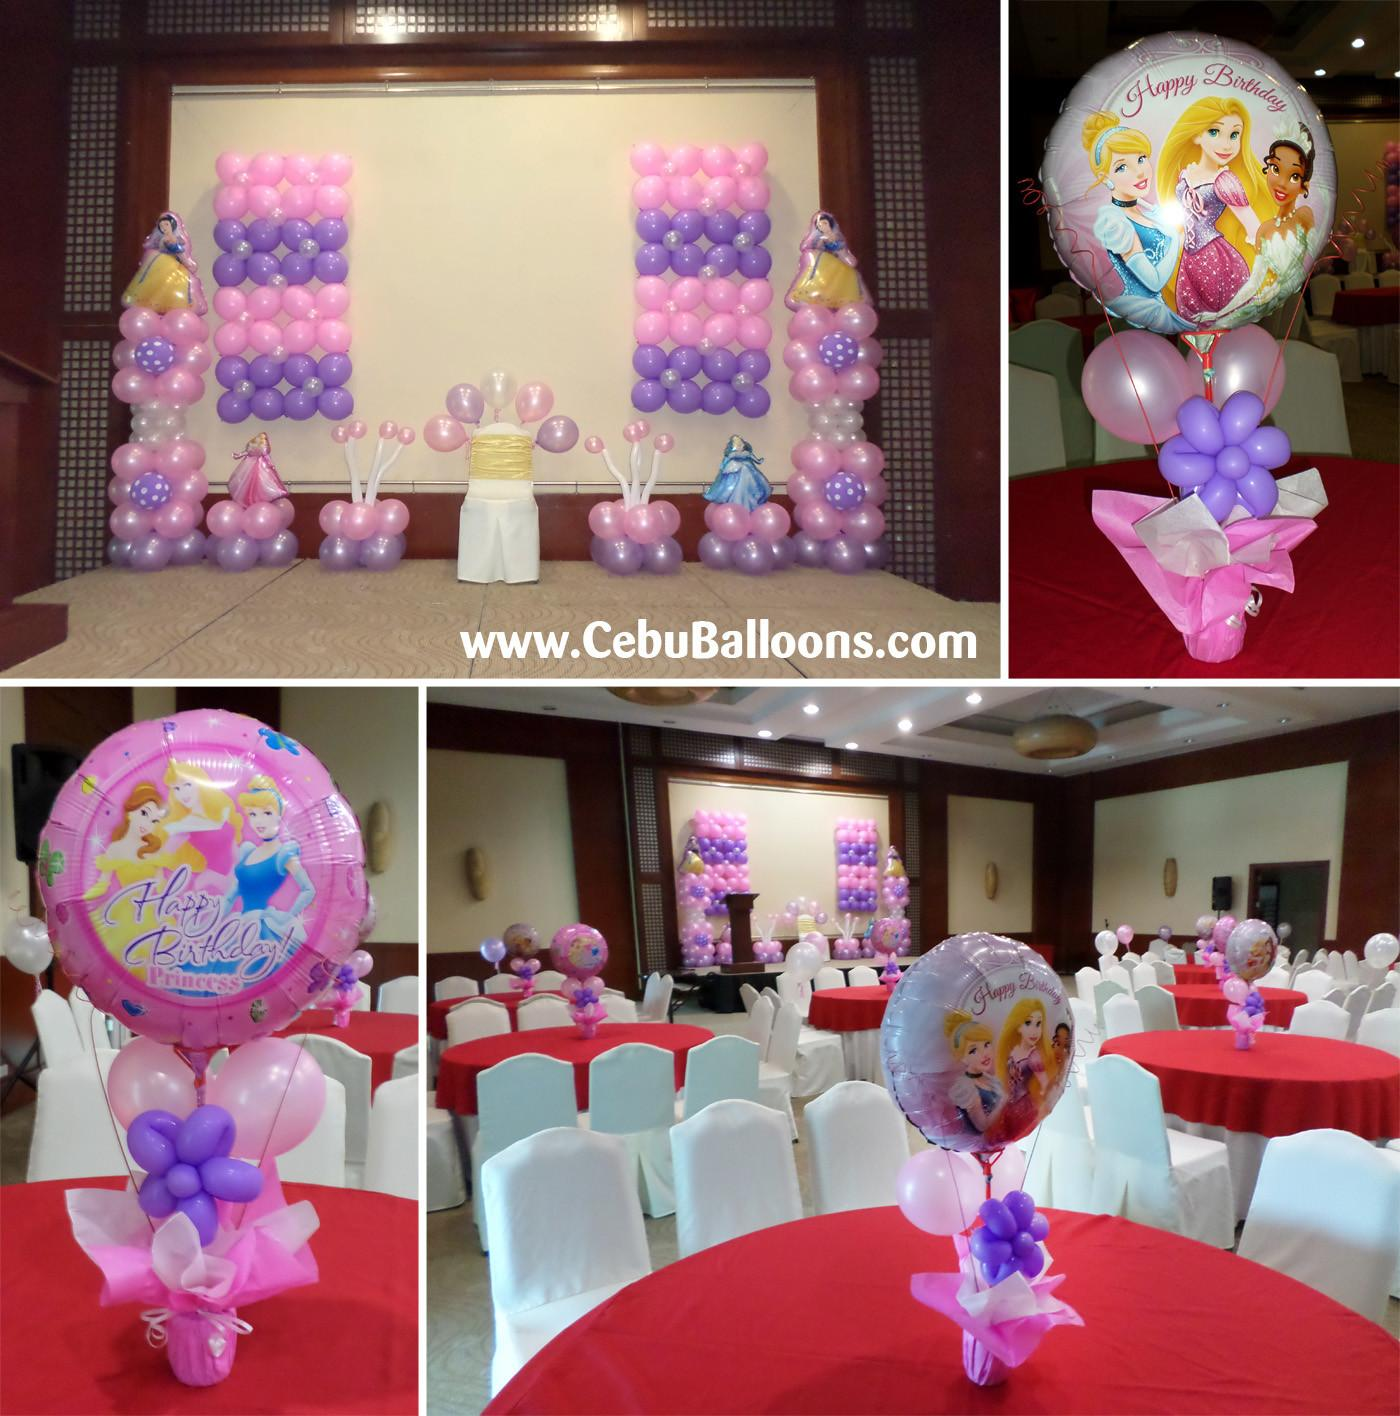 Order Spectacular Balloon Decorations More Your